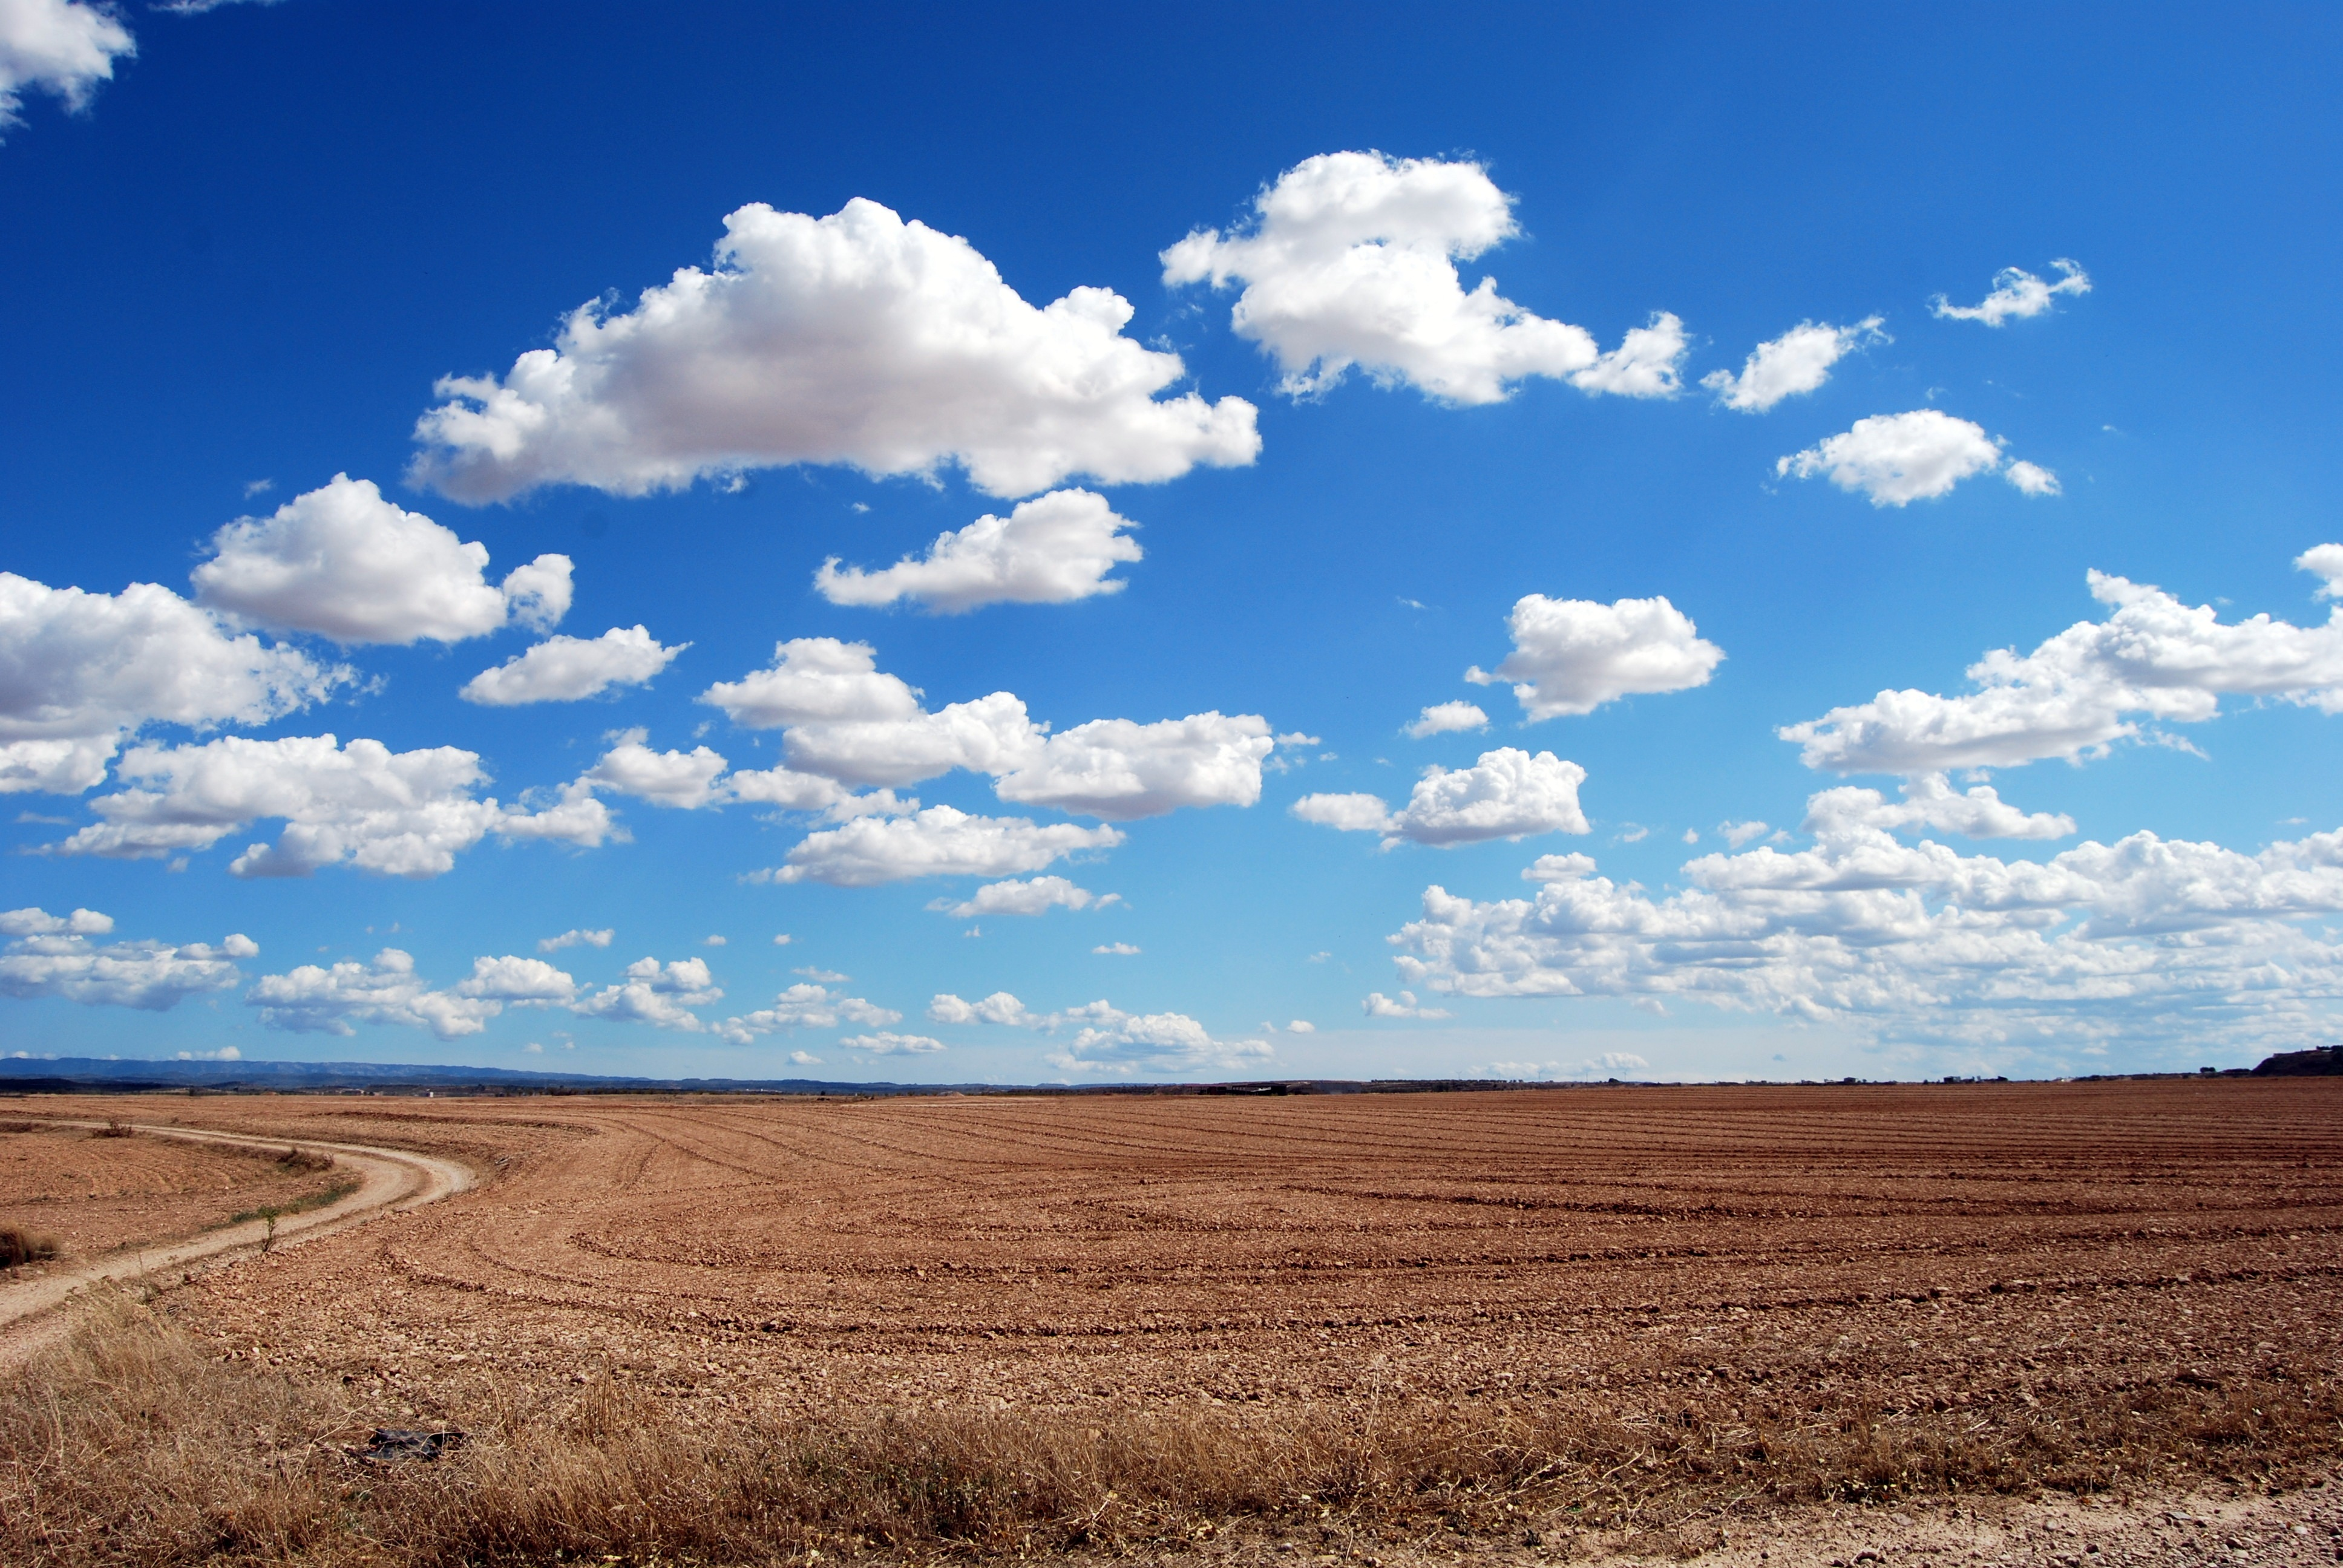 Brown Field and Blue Sky Free Stock Photo